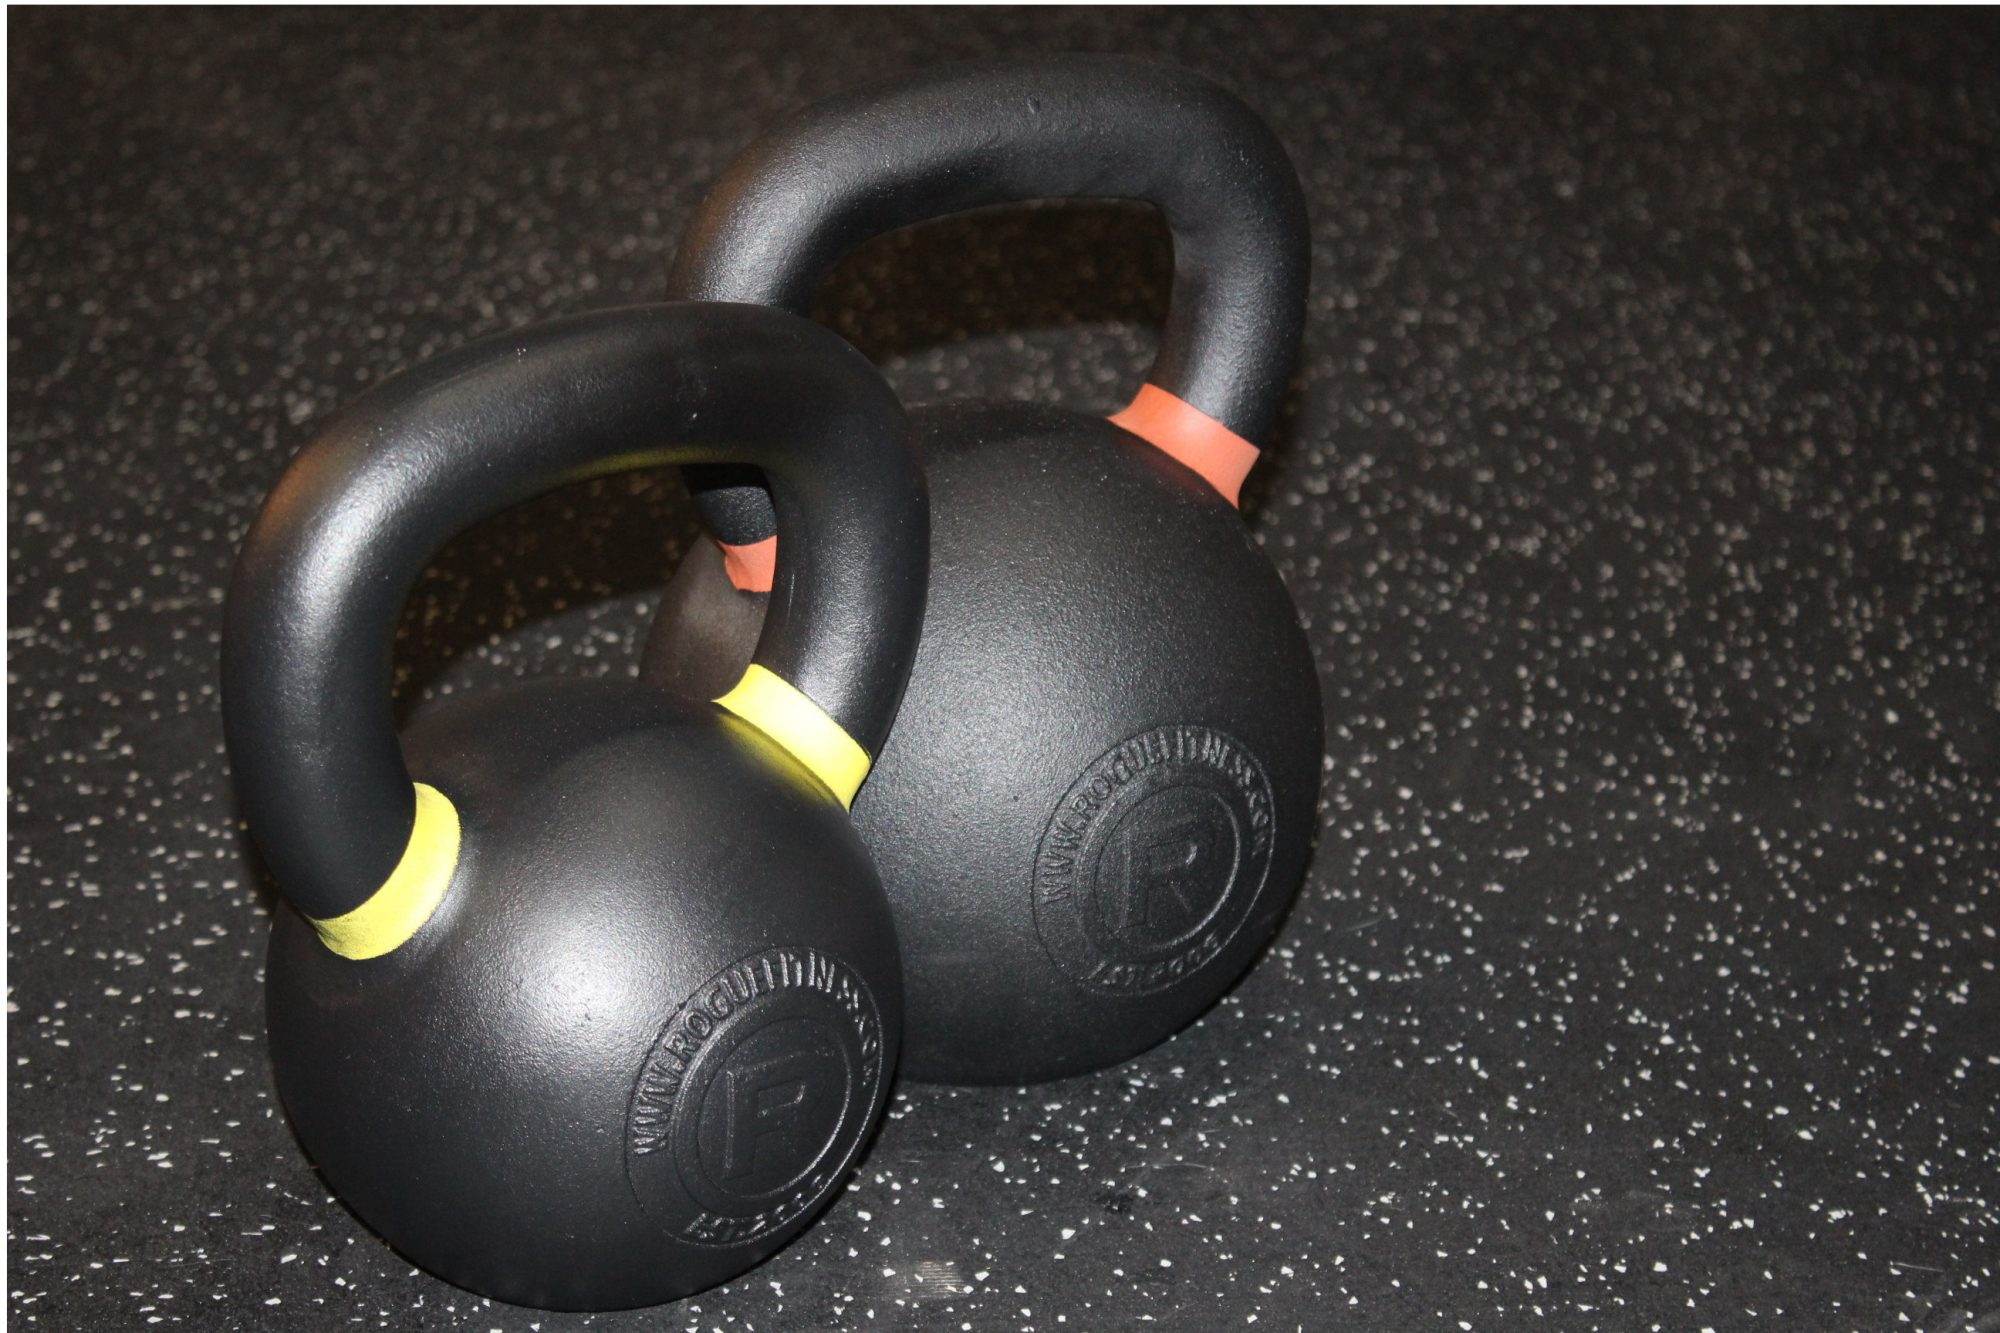 Pandemic kettlebell training